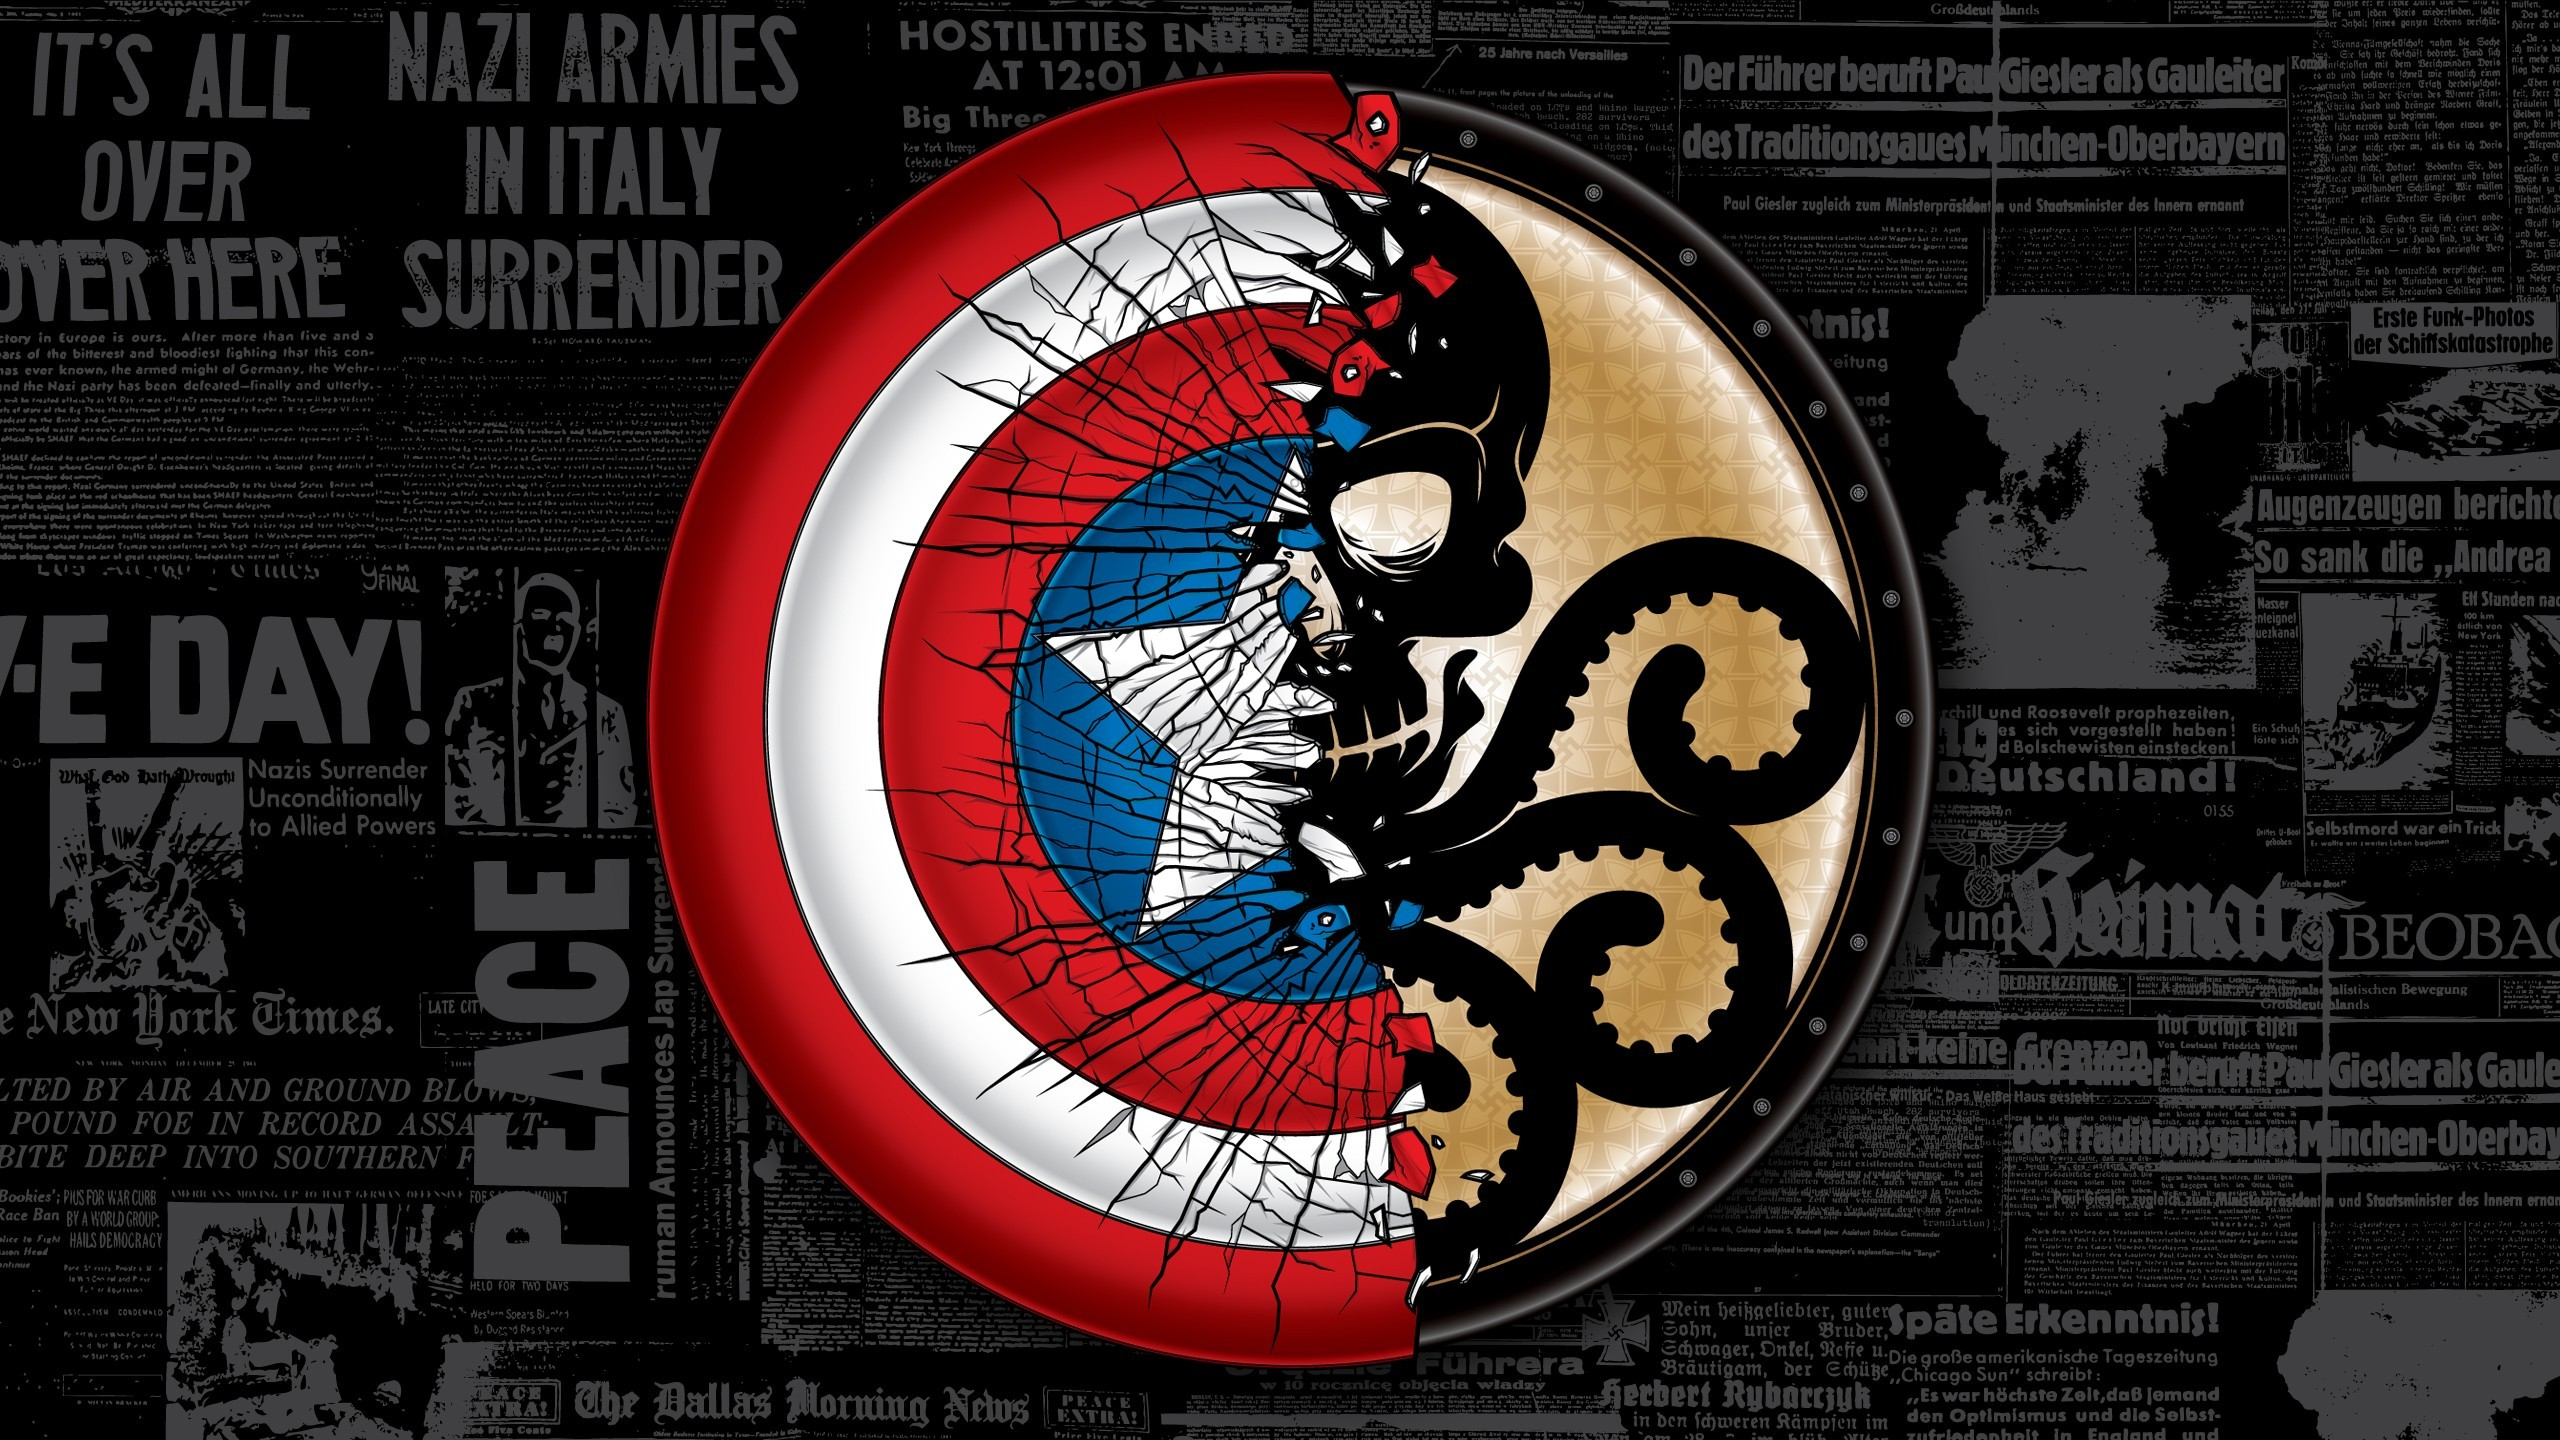 General 2560x1440 The Avengers Captain America: The Winter Soldier typography World War II newspapers cracked shield Hydra (comics)